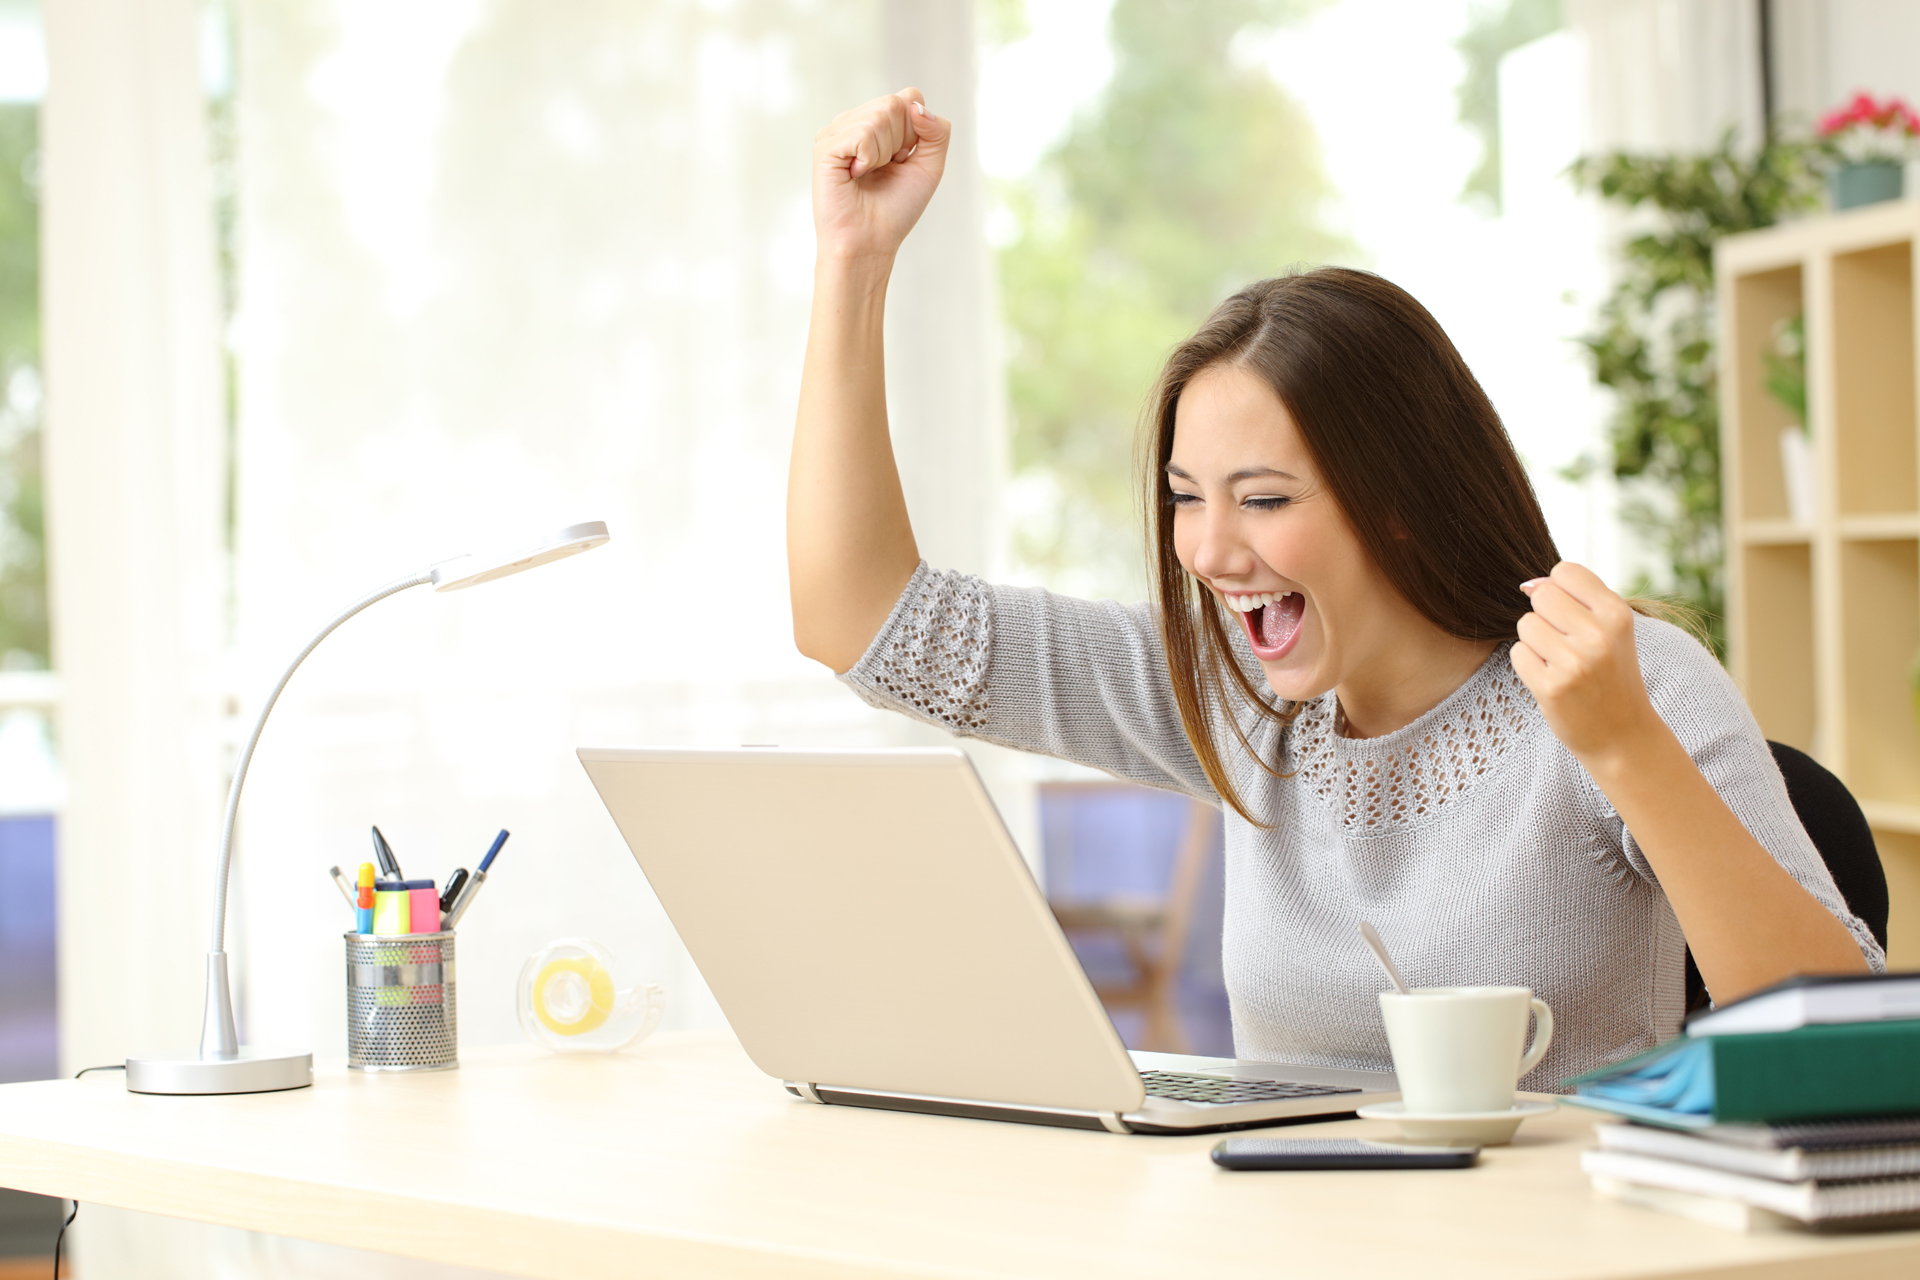 A woman watching a laptop on a desk winning at home